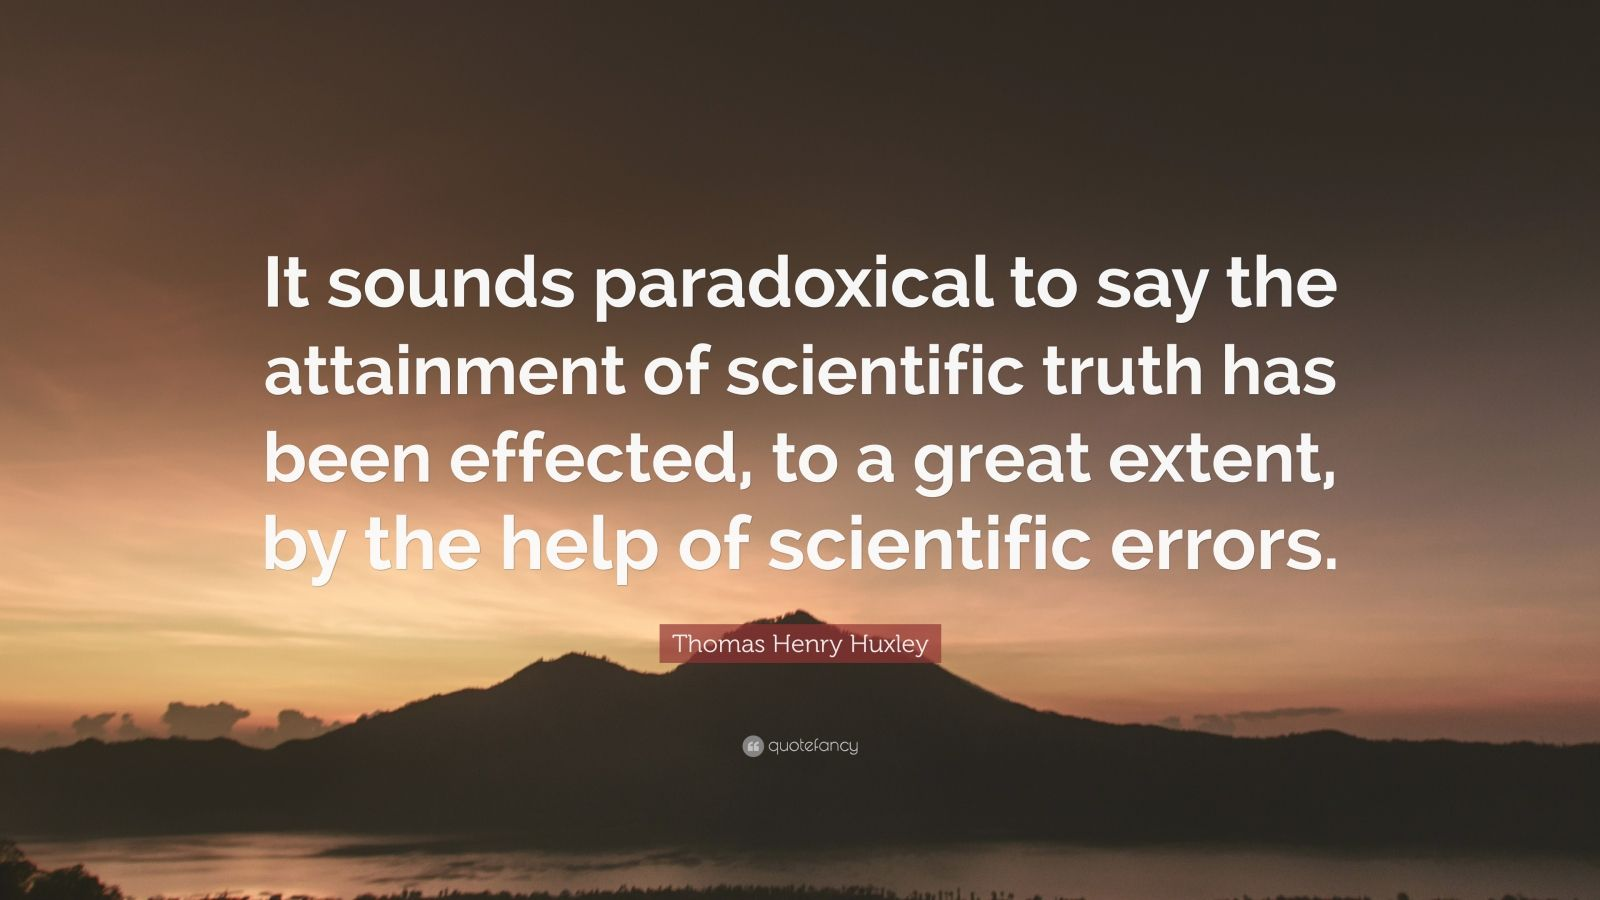 """Thomas Henry Huxley Quote: """"It sounds paradoxical to say the attainment of scientific truth has been effected, to a great extent, by the help of scientific errors."""""""